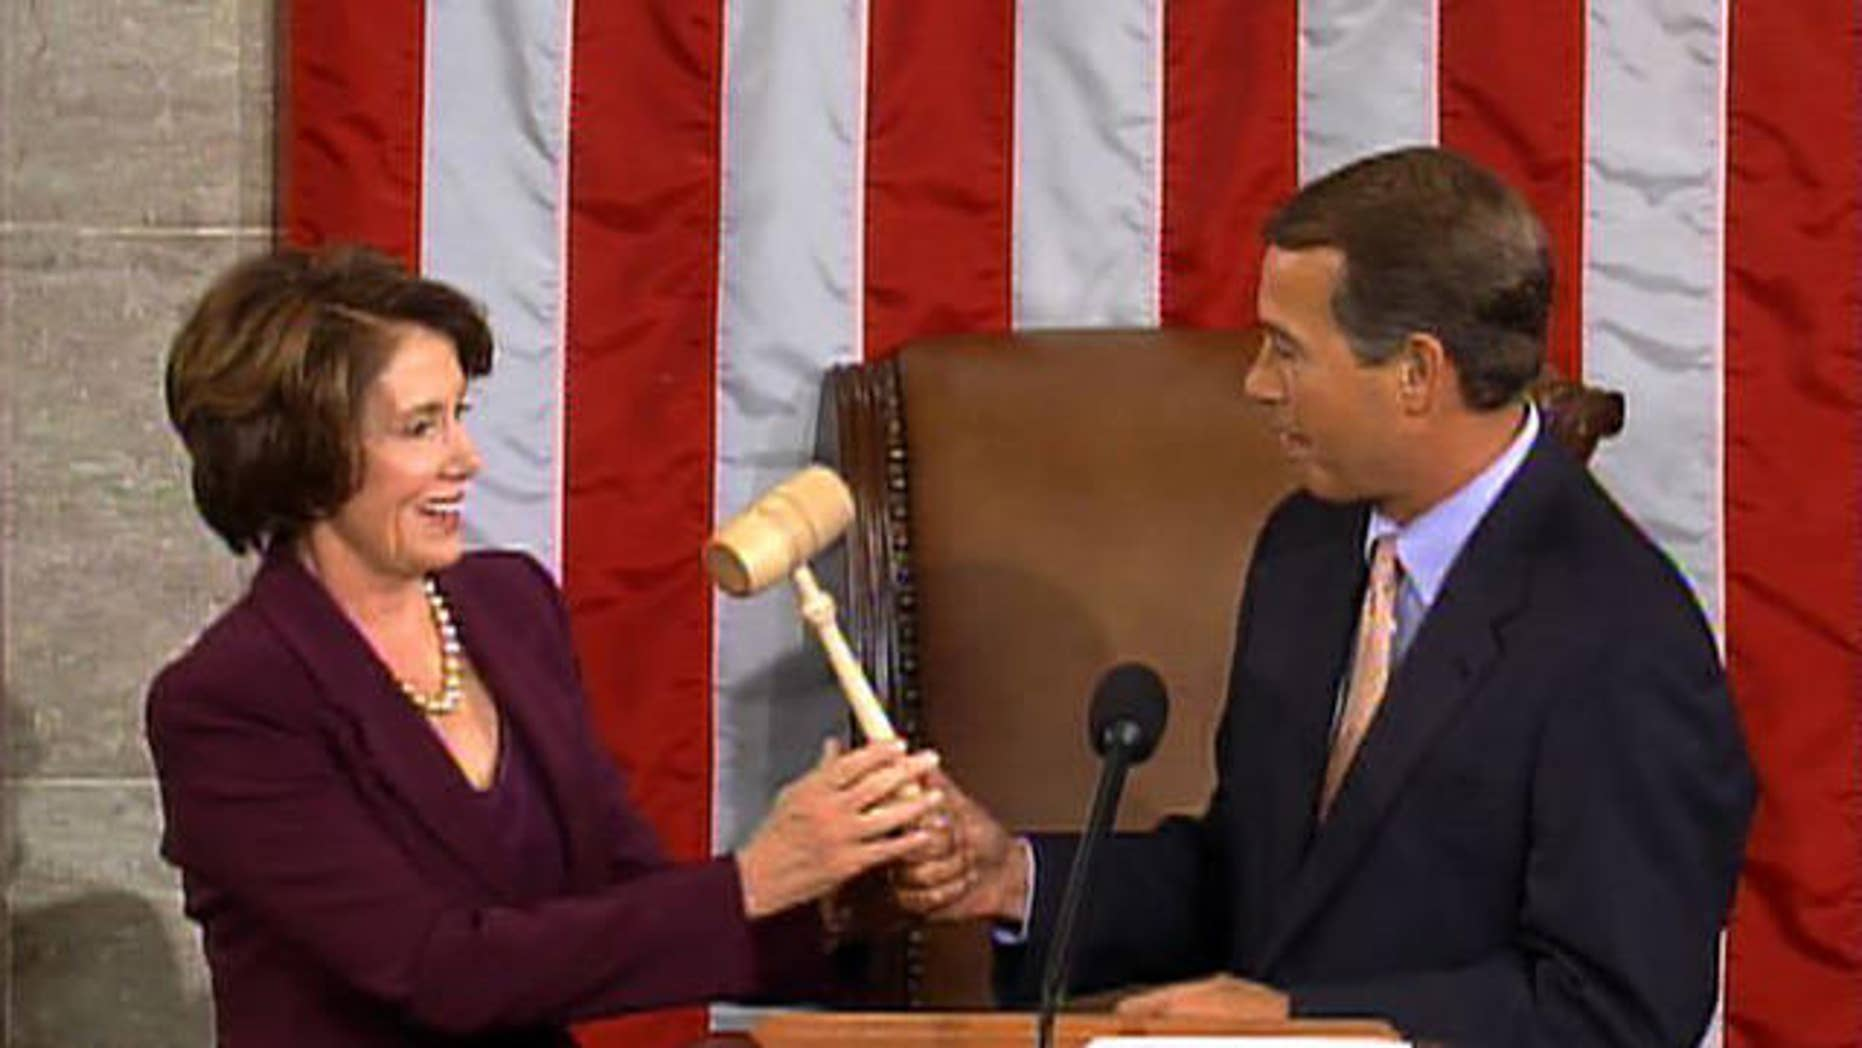 FILE: In this Jan. 4, 2007, photo, Minority Leader John Boehner hands the gavel to newly sworn-in Speaker Nancy Pelosi. A reversal of the two leaders' roles was happening Wednesday.